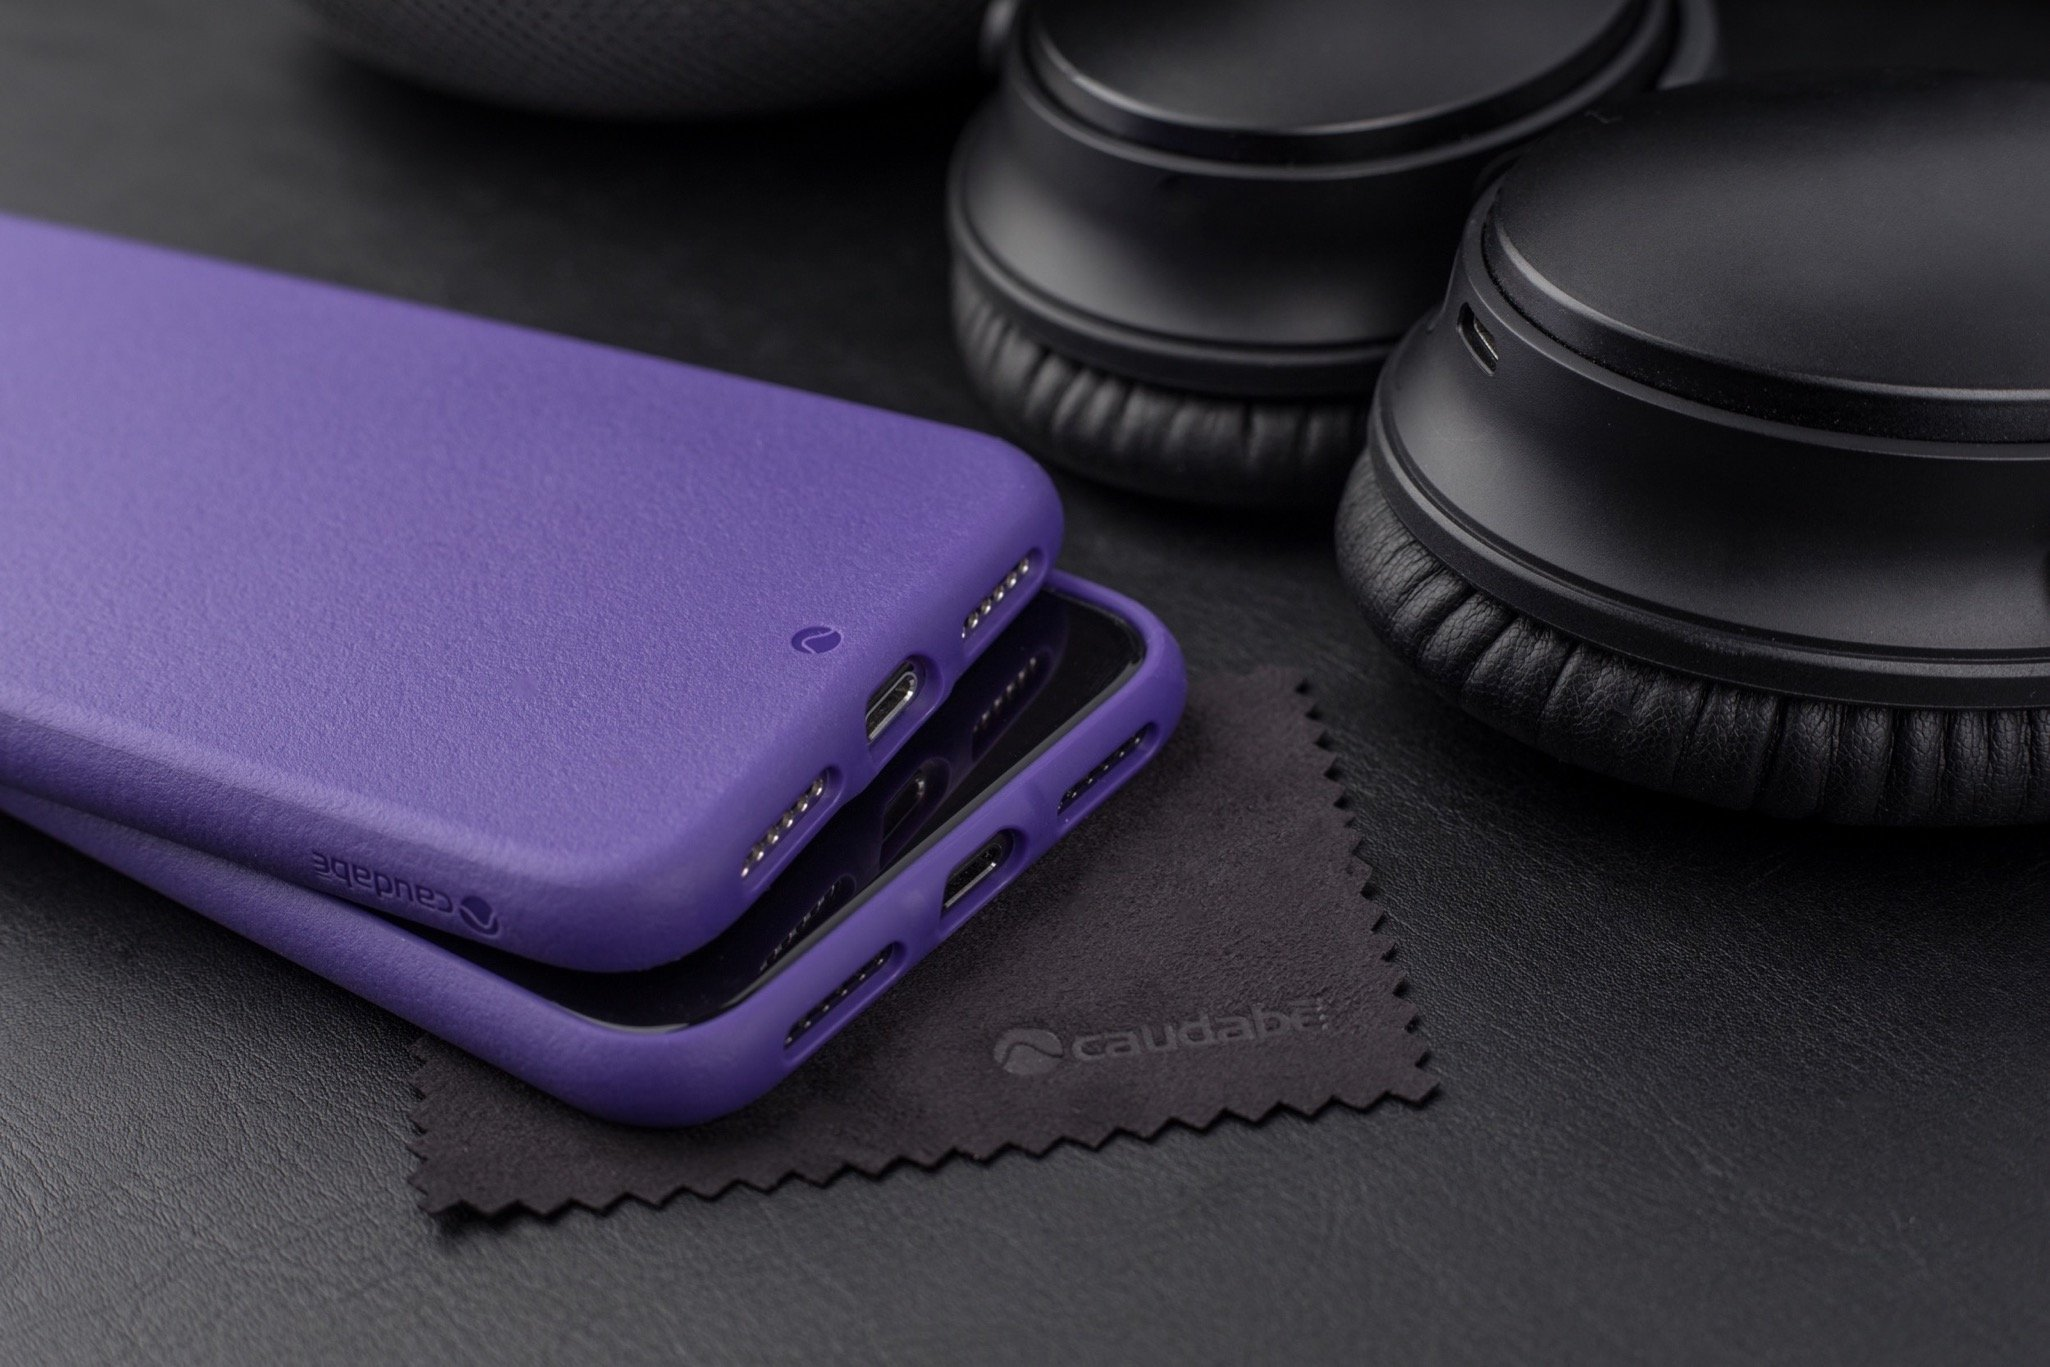 caudabe-the-sheath-iphone-x-ultraviolet-malaysia-market-forexengineer-IPE-SHEATH-CULT